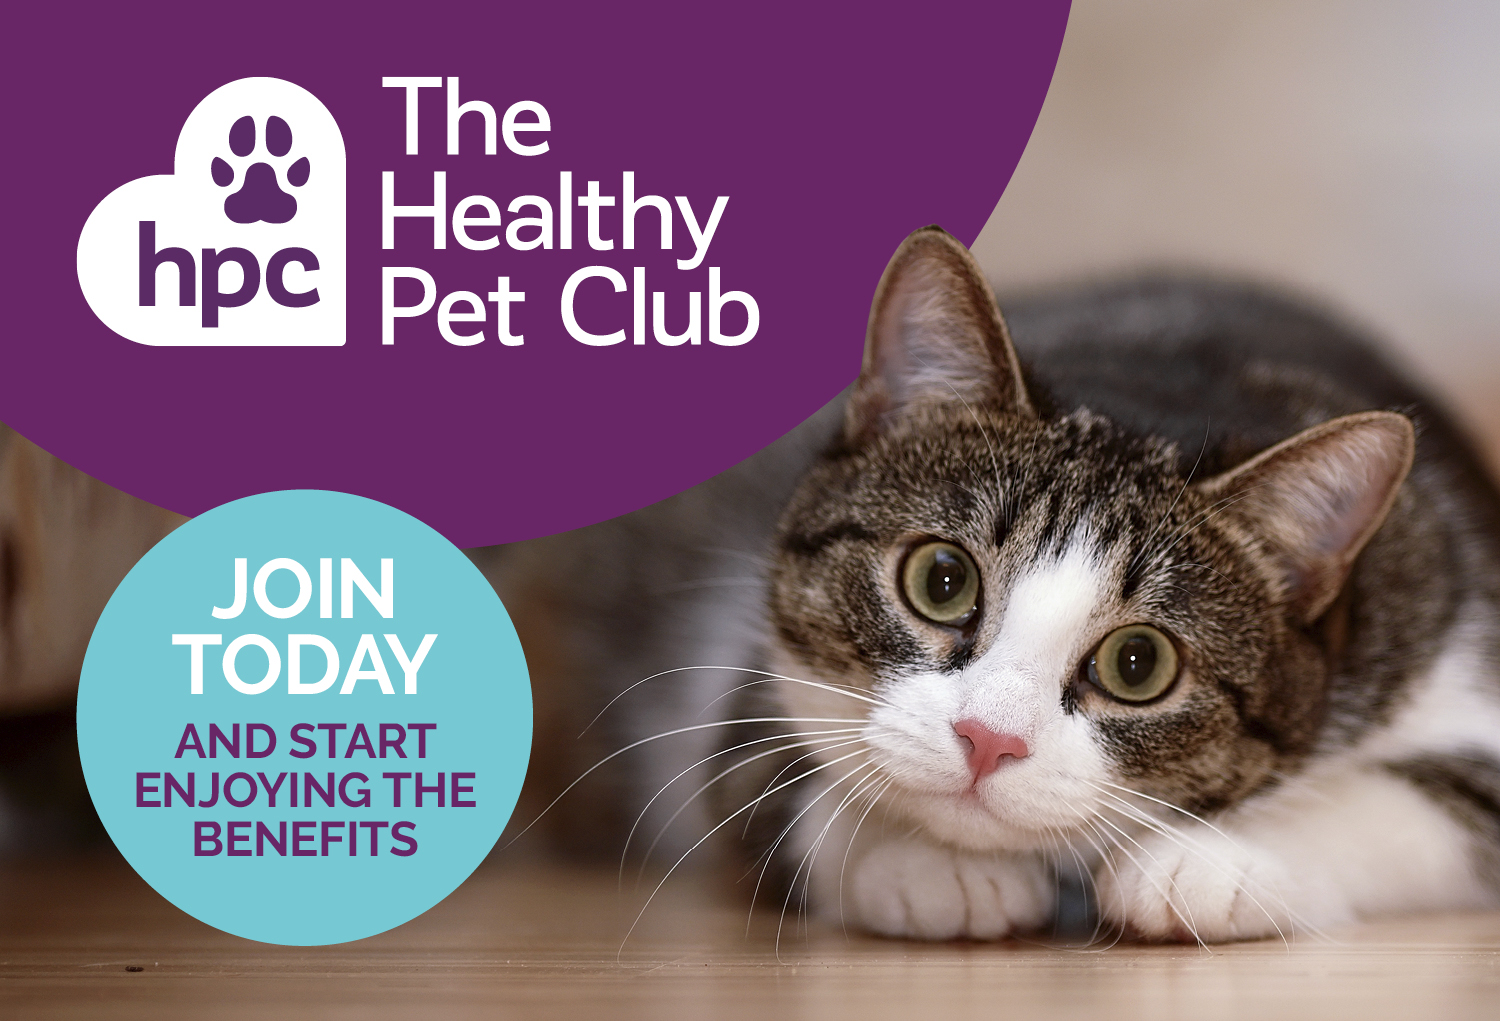 Join The Healthy Pet Club Today